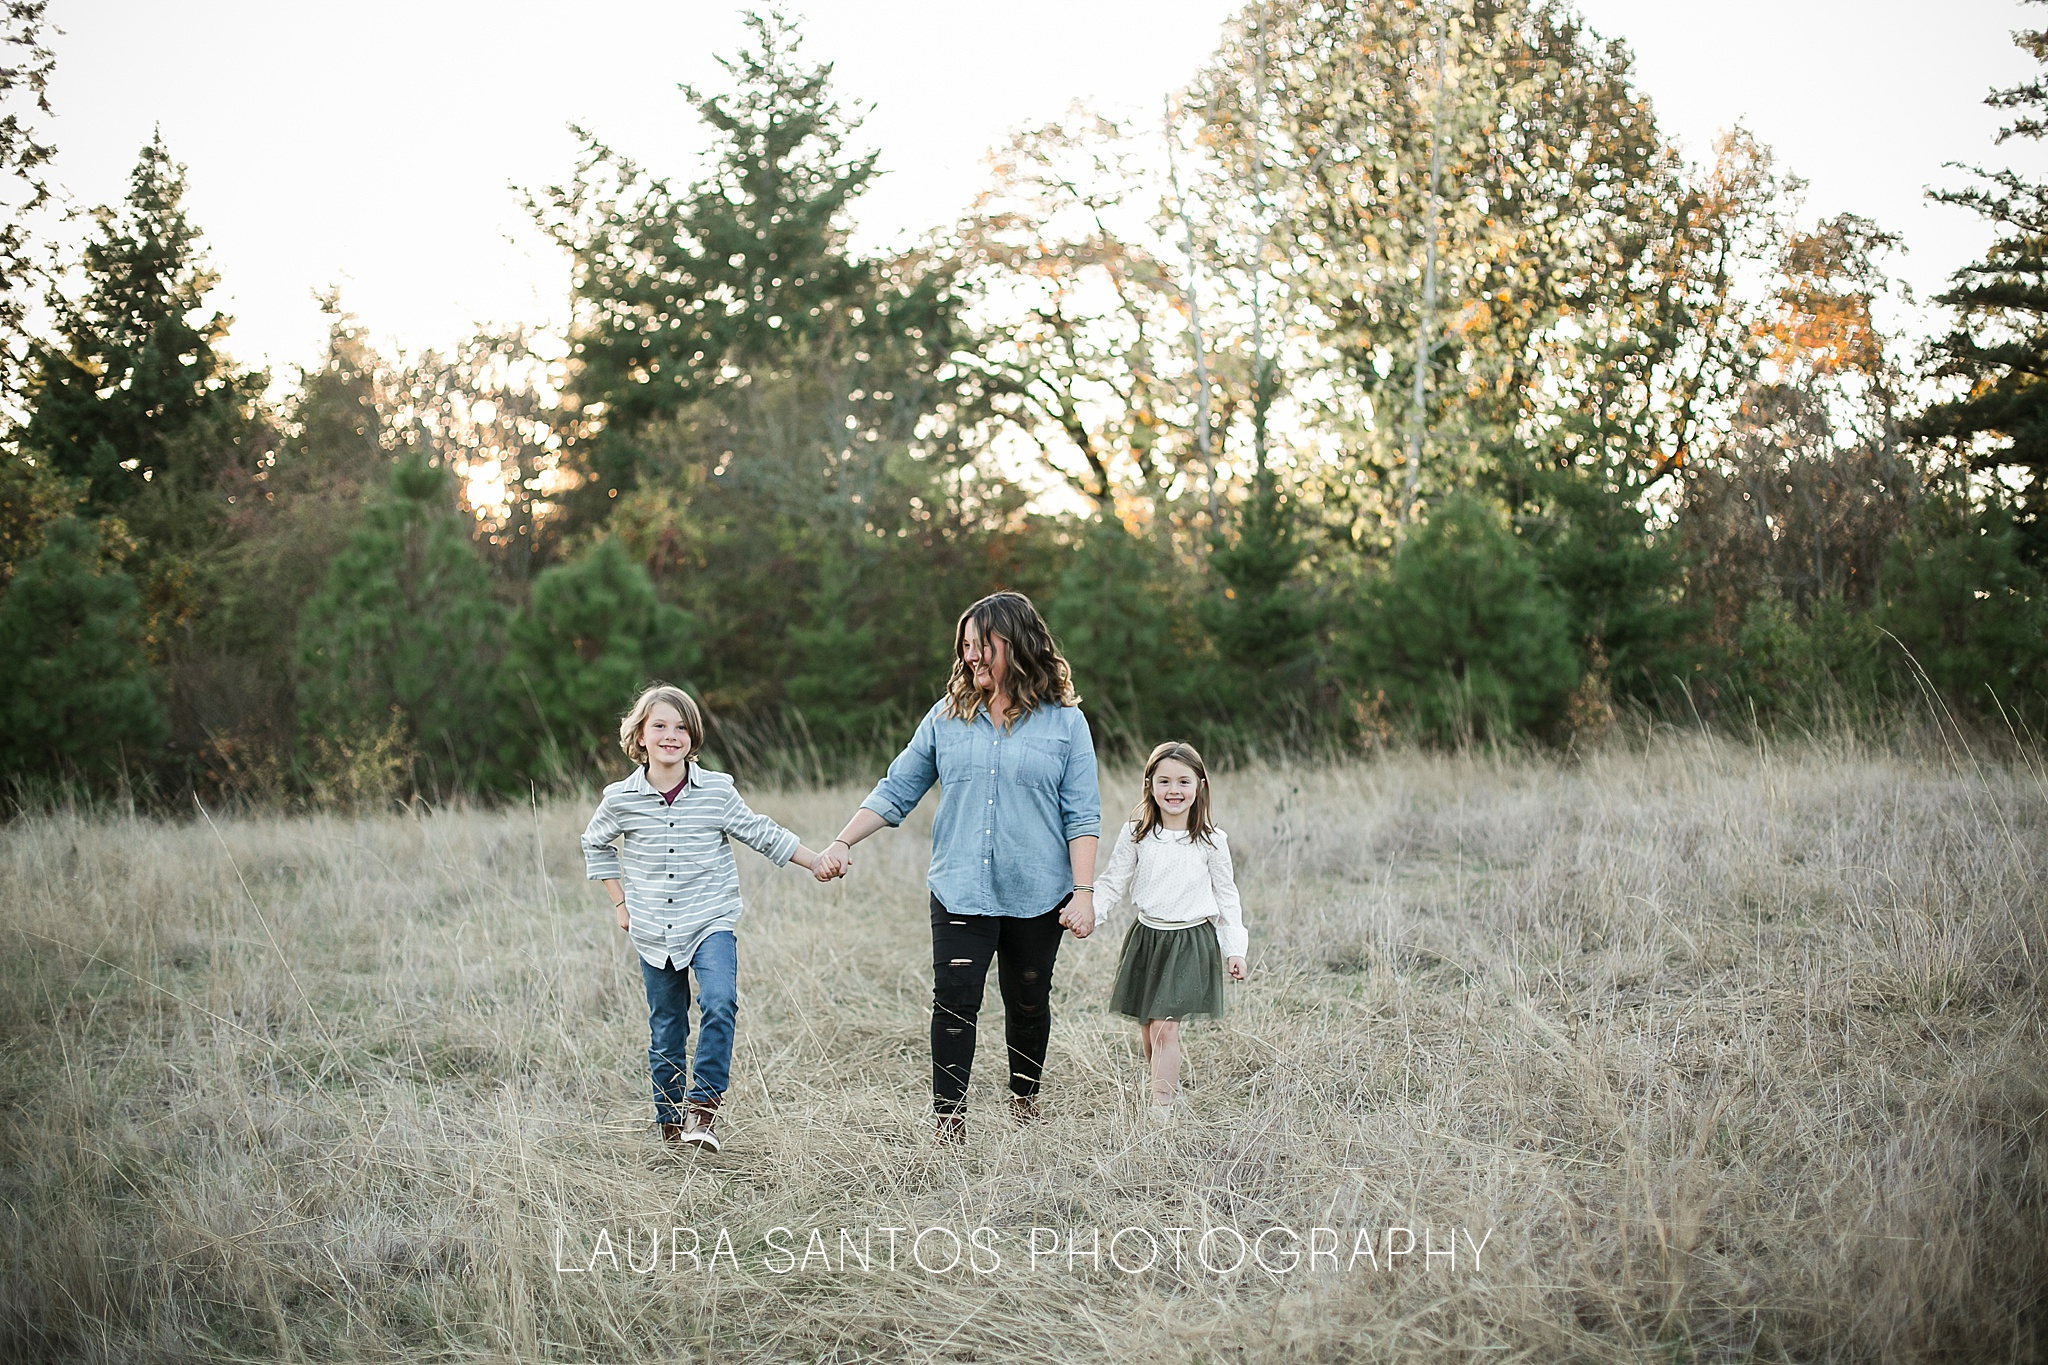 Laura Santos Photography Portland Oregon Family Photographer_0901.jpg